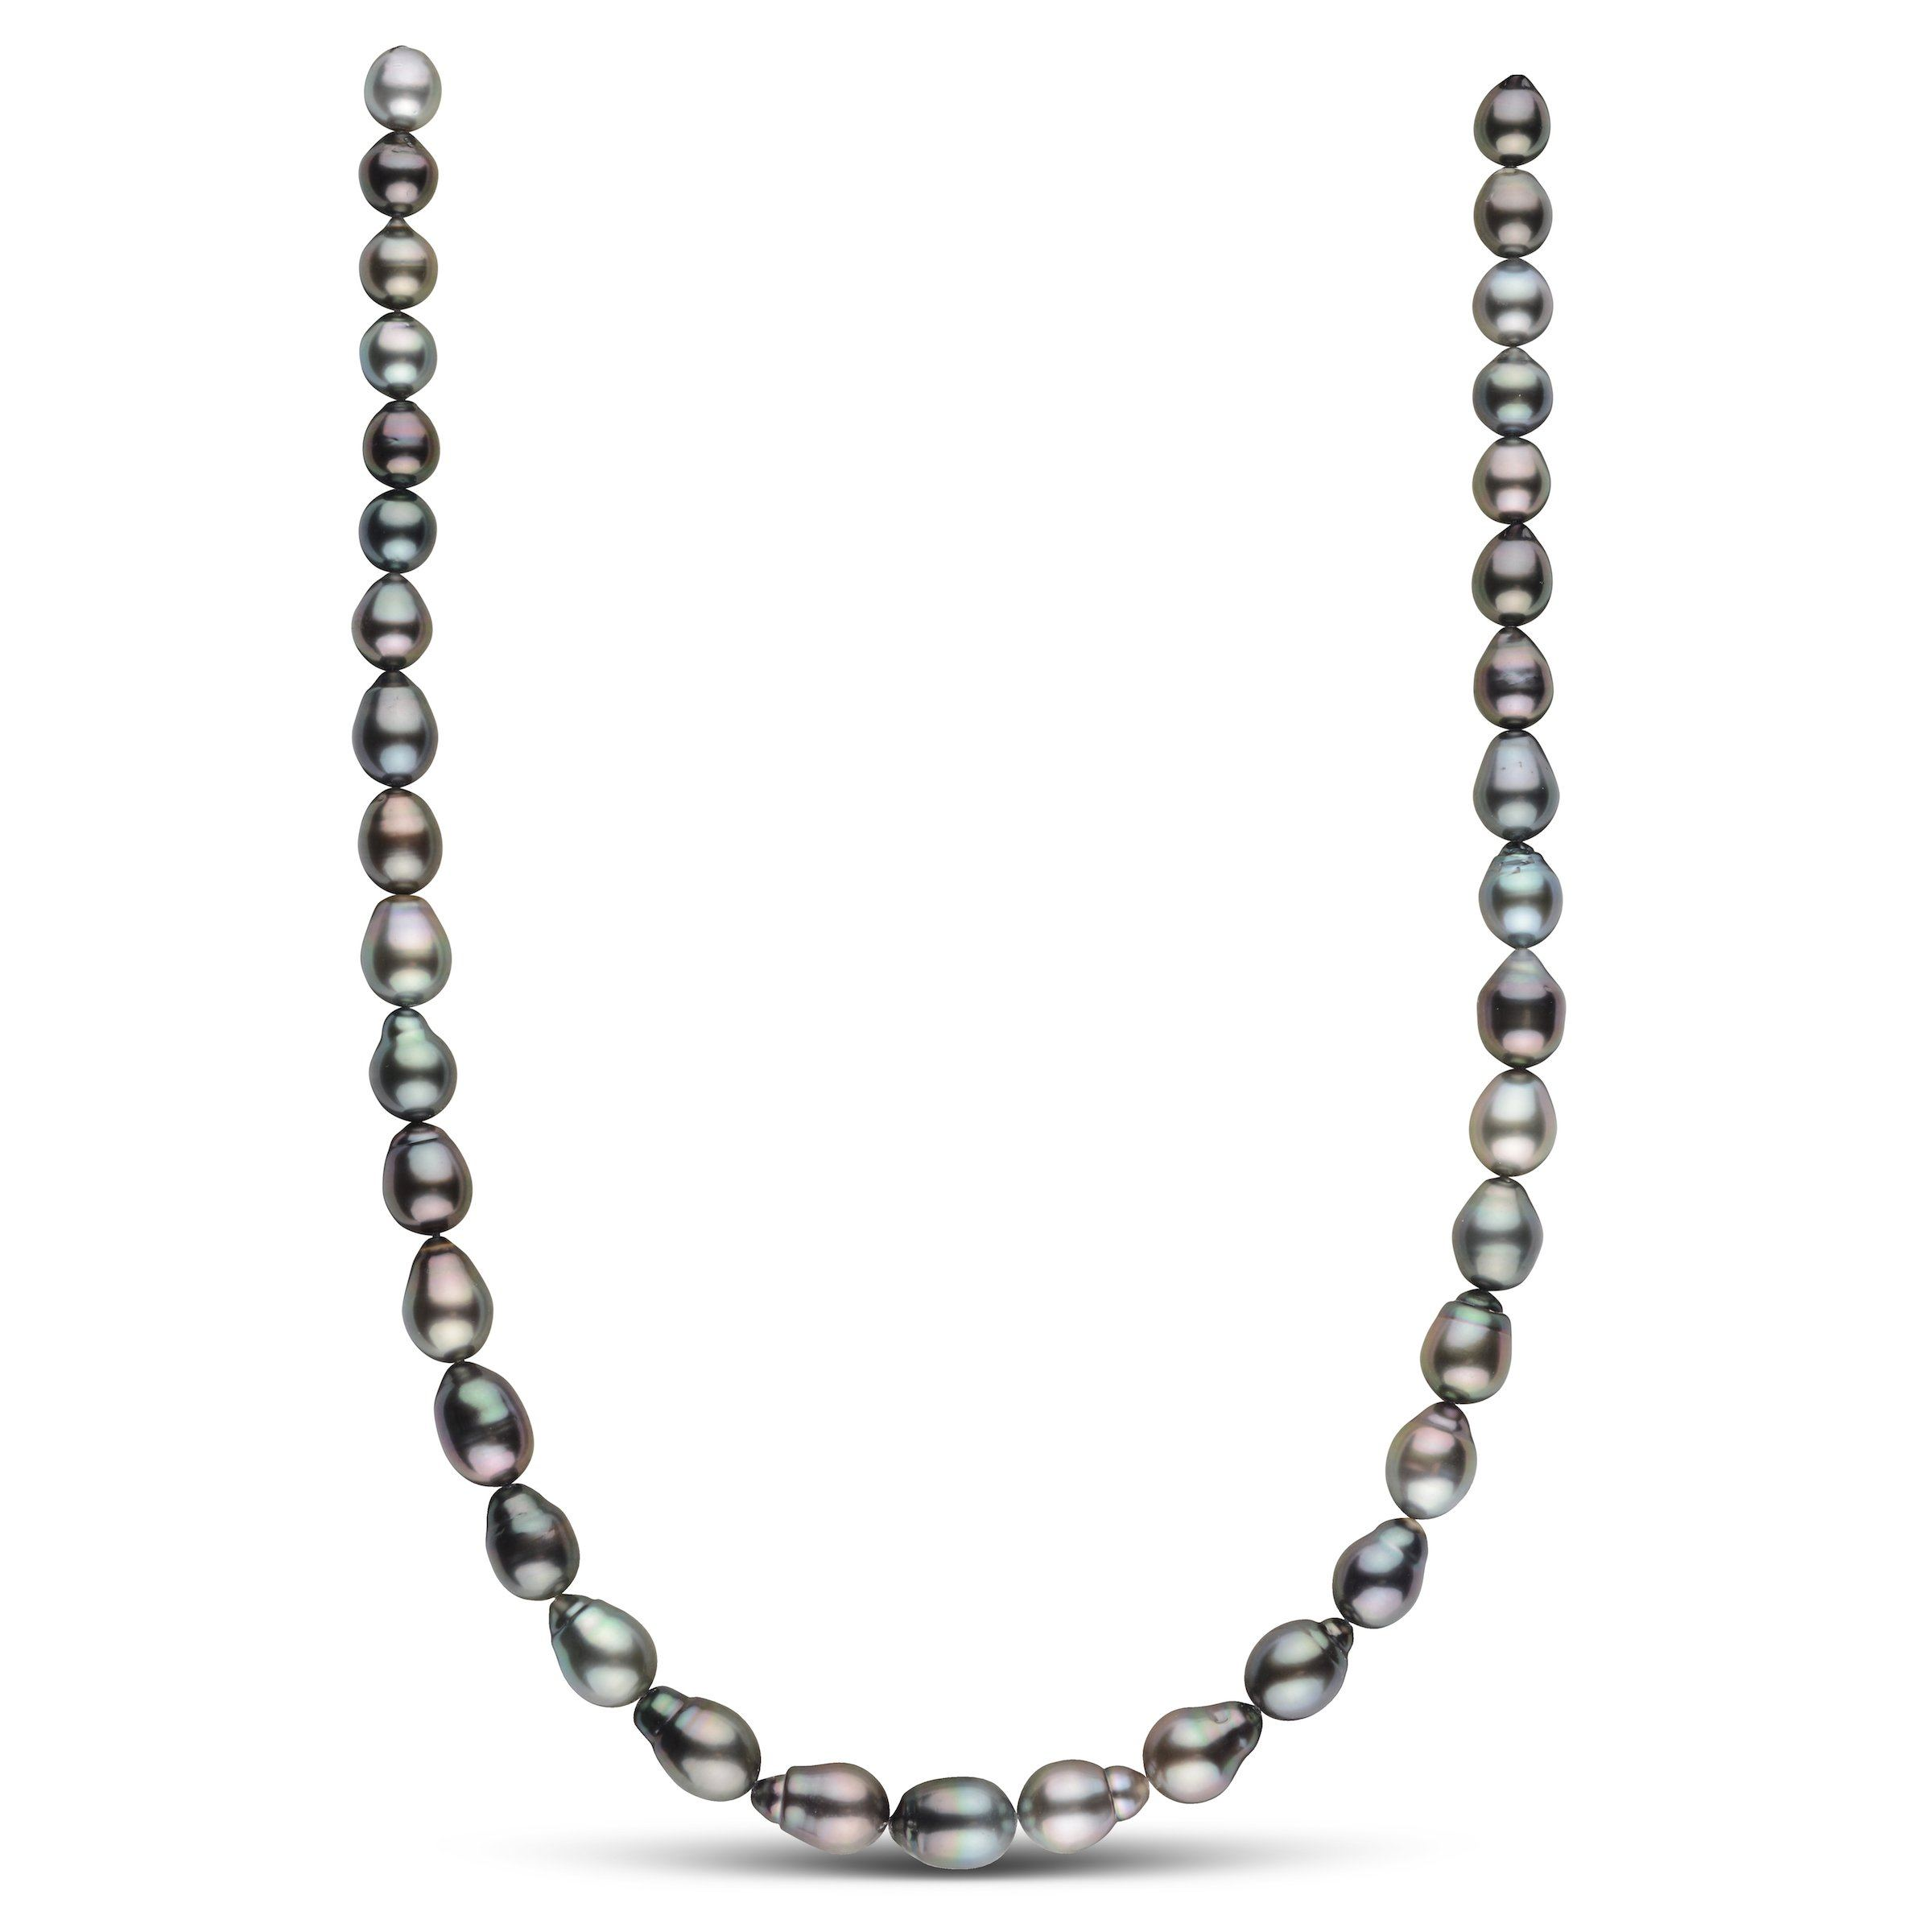 8.5-10.1 mm AAA Tahitian Drop Pearl Necklace